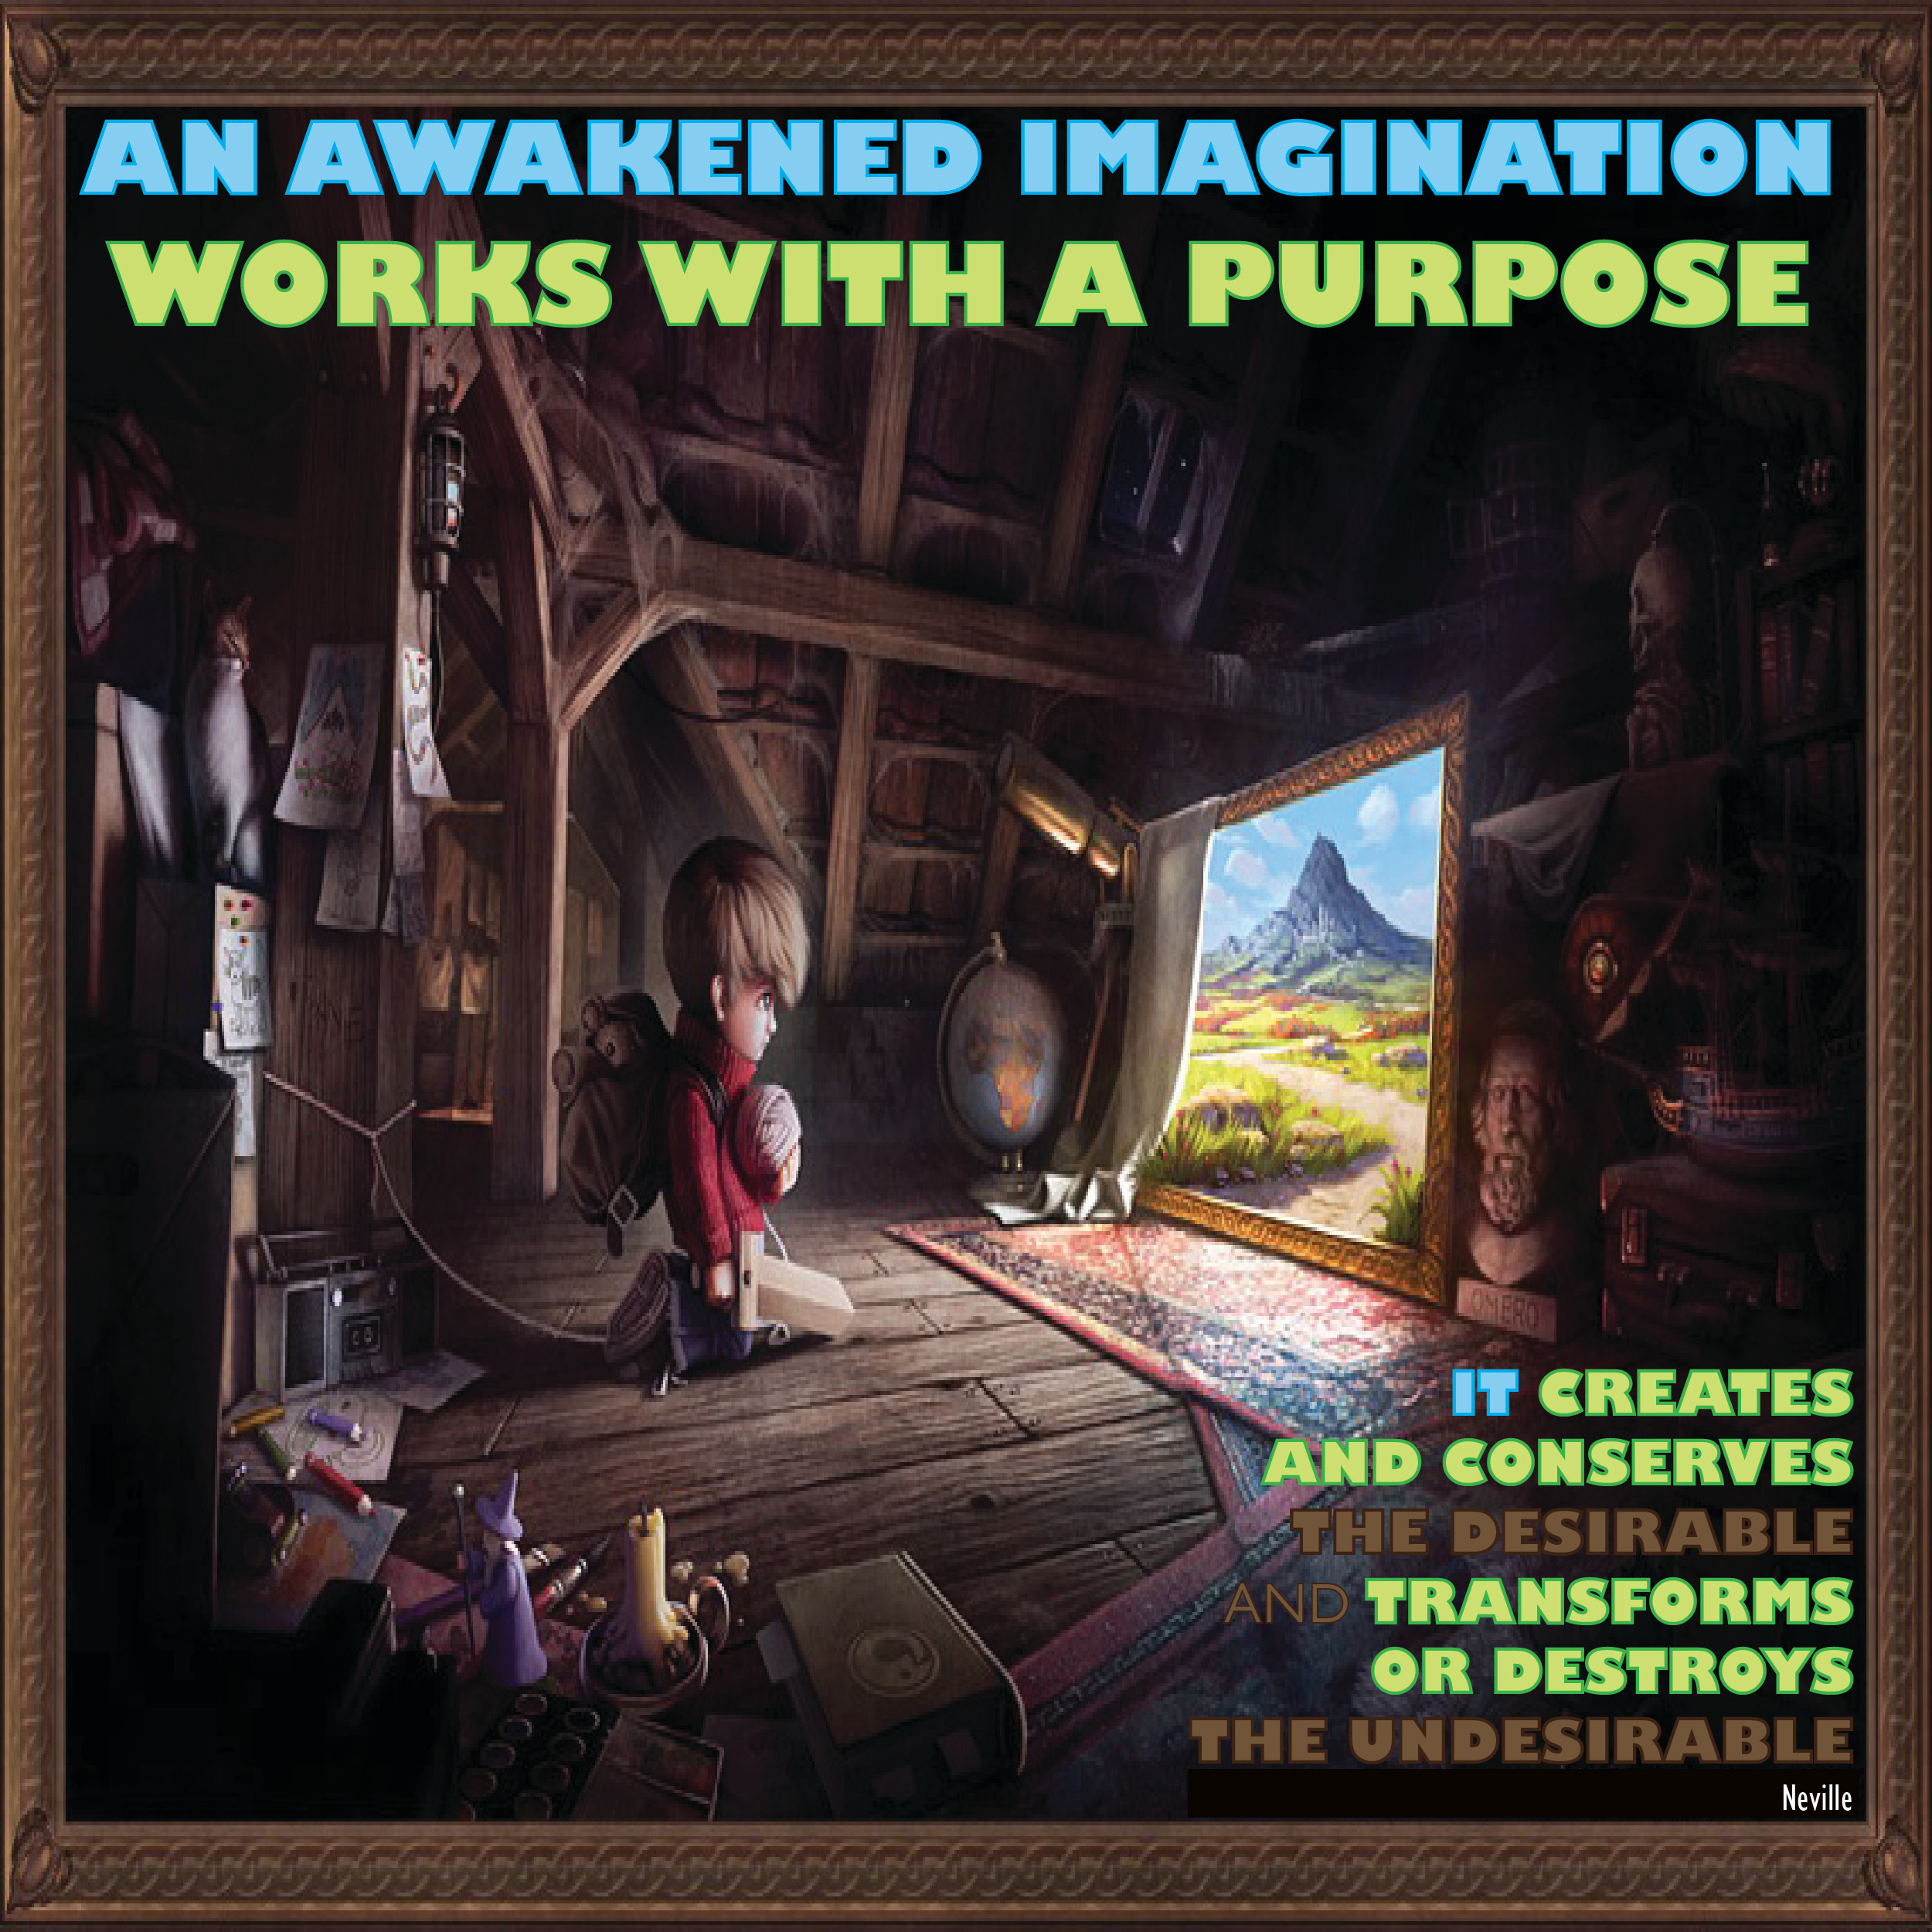 awakened.imagination